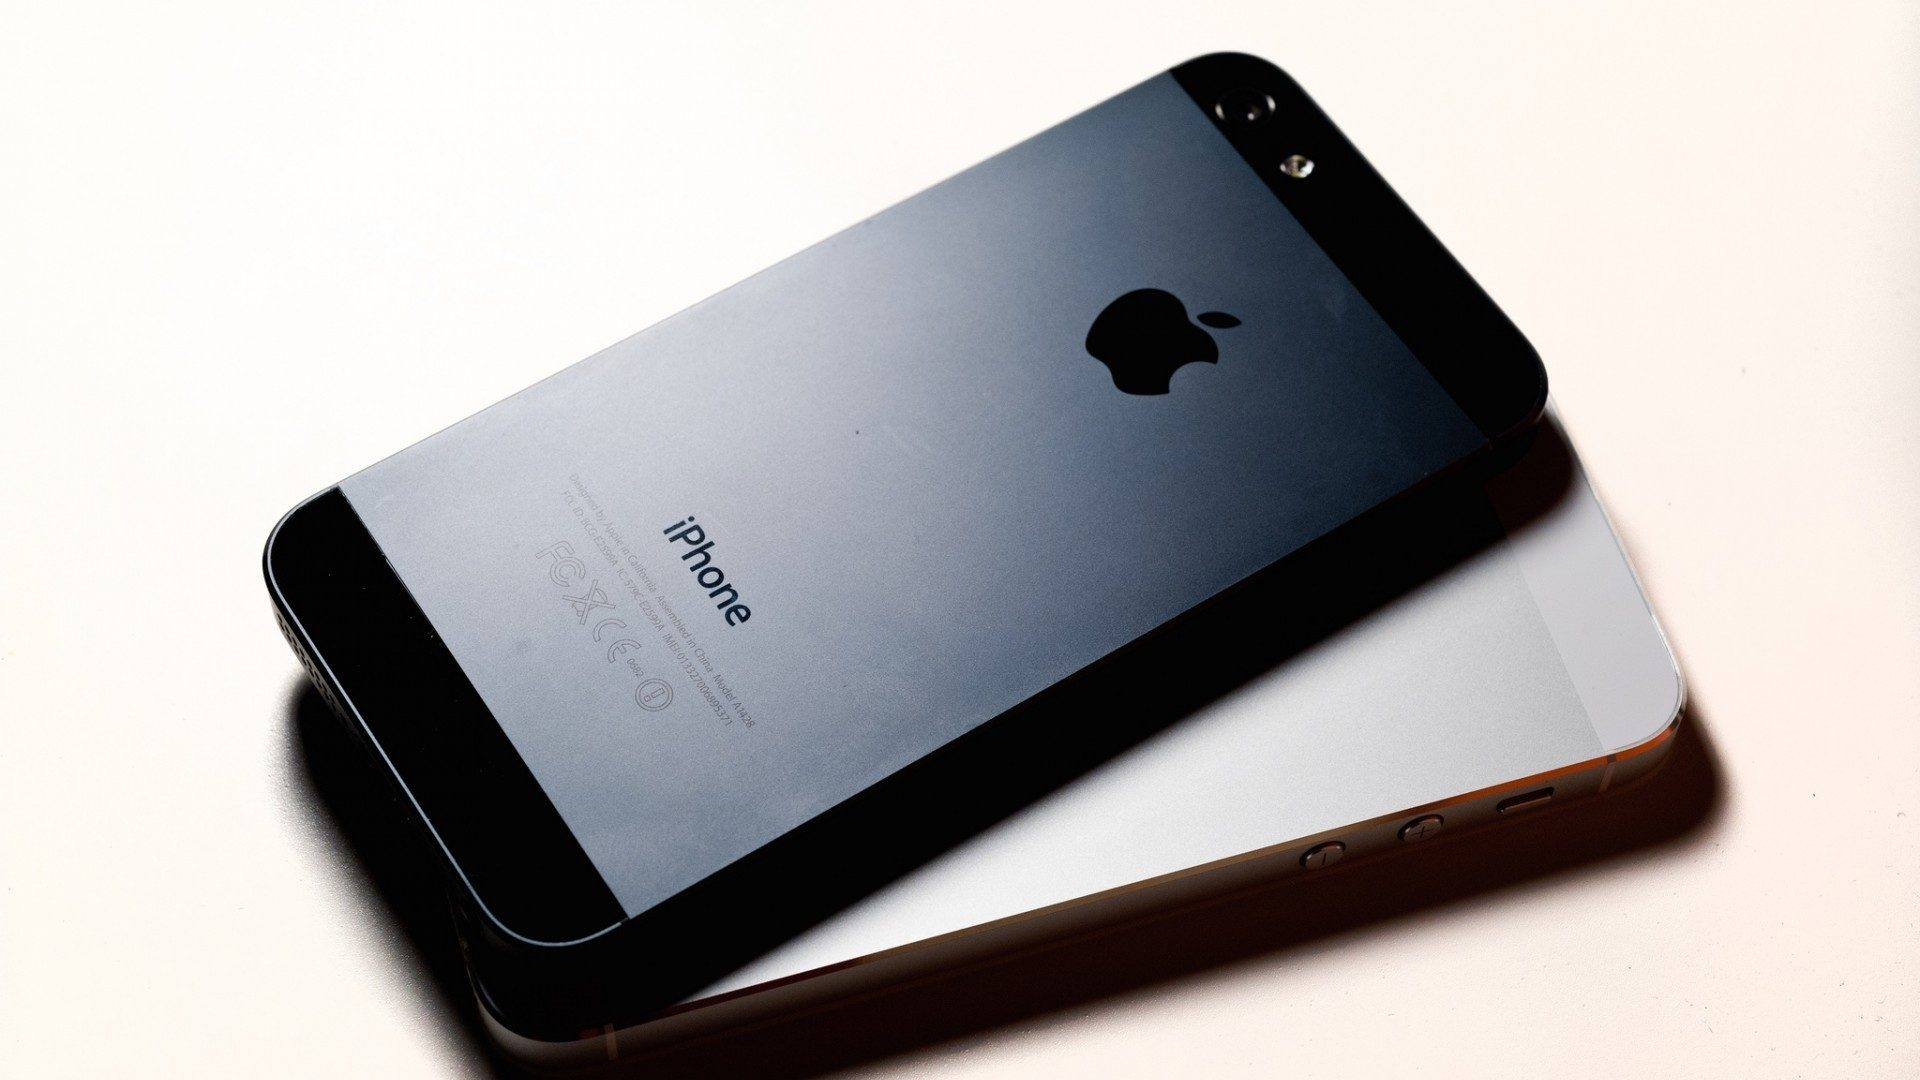 IPhone 5 Rear 1920 X 1080 HDTV 1080p Wallpapers